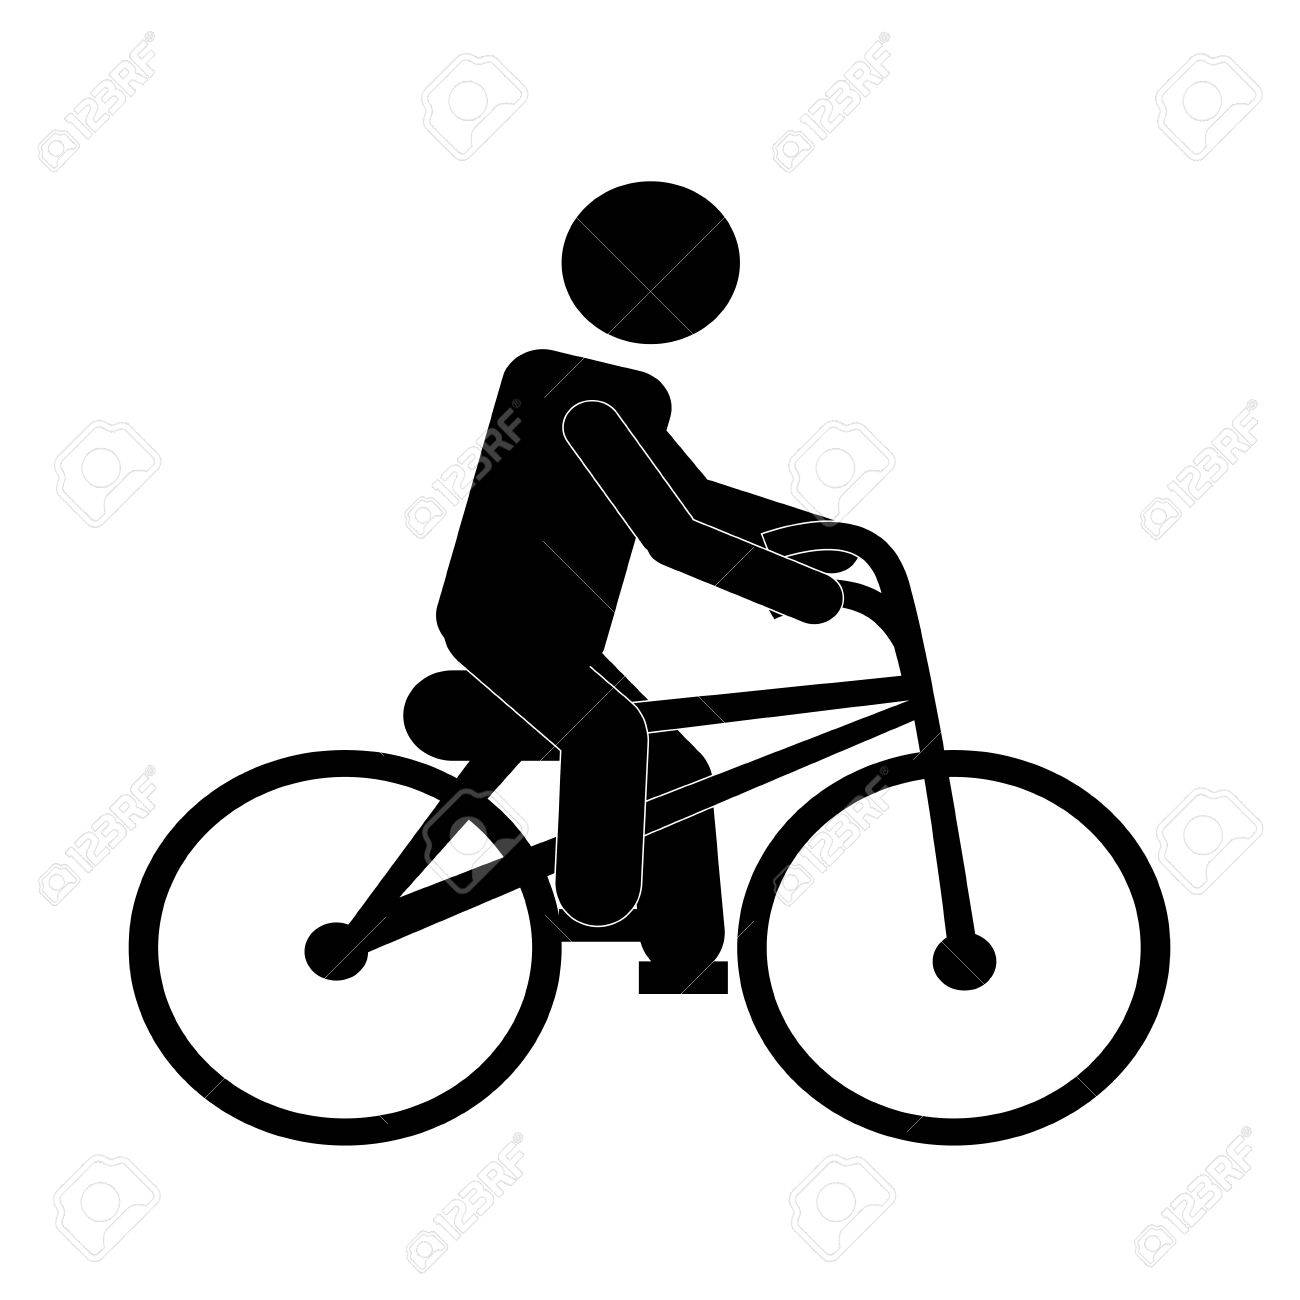 man riding bike silhouette over white background.